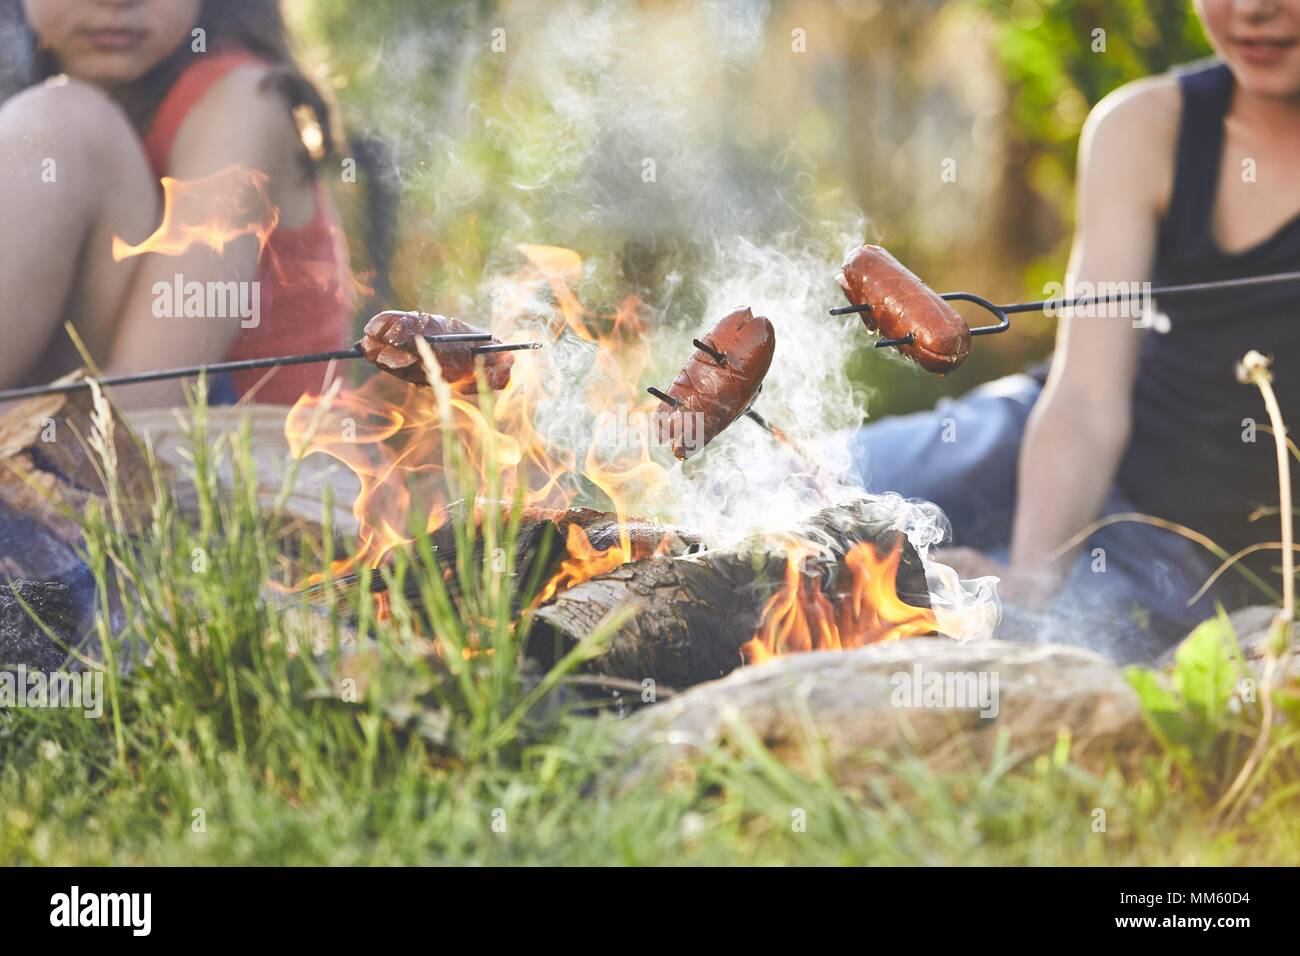 Children enjoy campfire. Girls (family) toasting sausages on the garden. - Stock Image